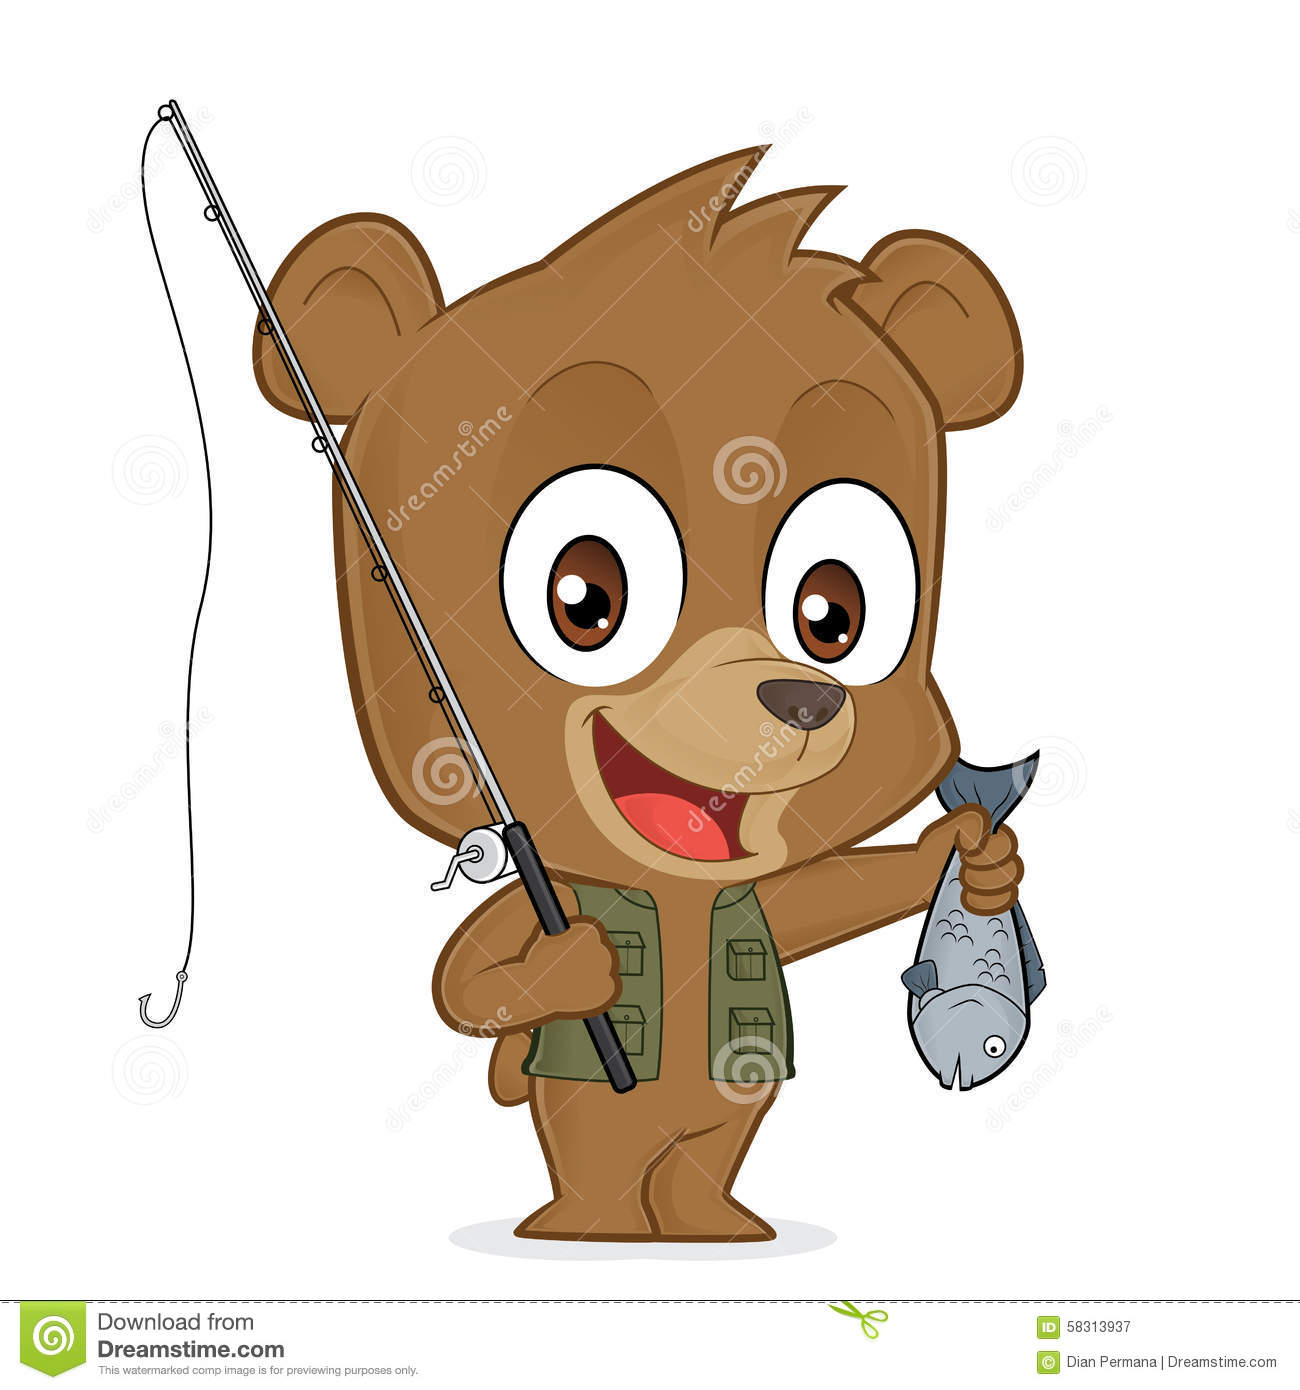 Perspective Fishing Hook Icon Vector 8251188 moreover 13 Fishing Wicked Ice Rod Reel  bos besides Stock Illustration Bear Fisherman Clipart Picture Cartoon Character Image58313937 additionally Fishing Rod likewise Confete Carnaval. on fishing tackle clip art